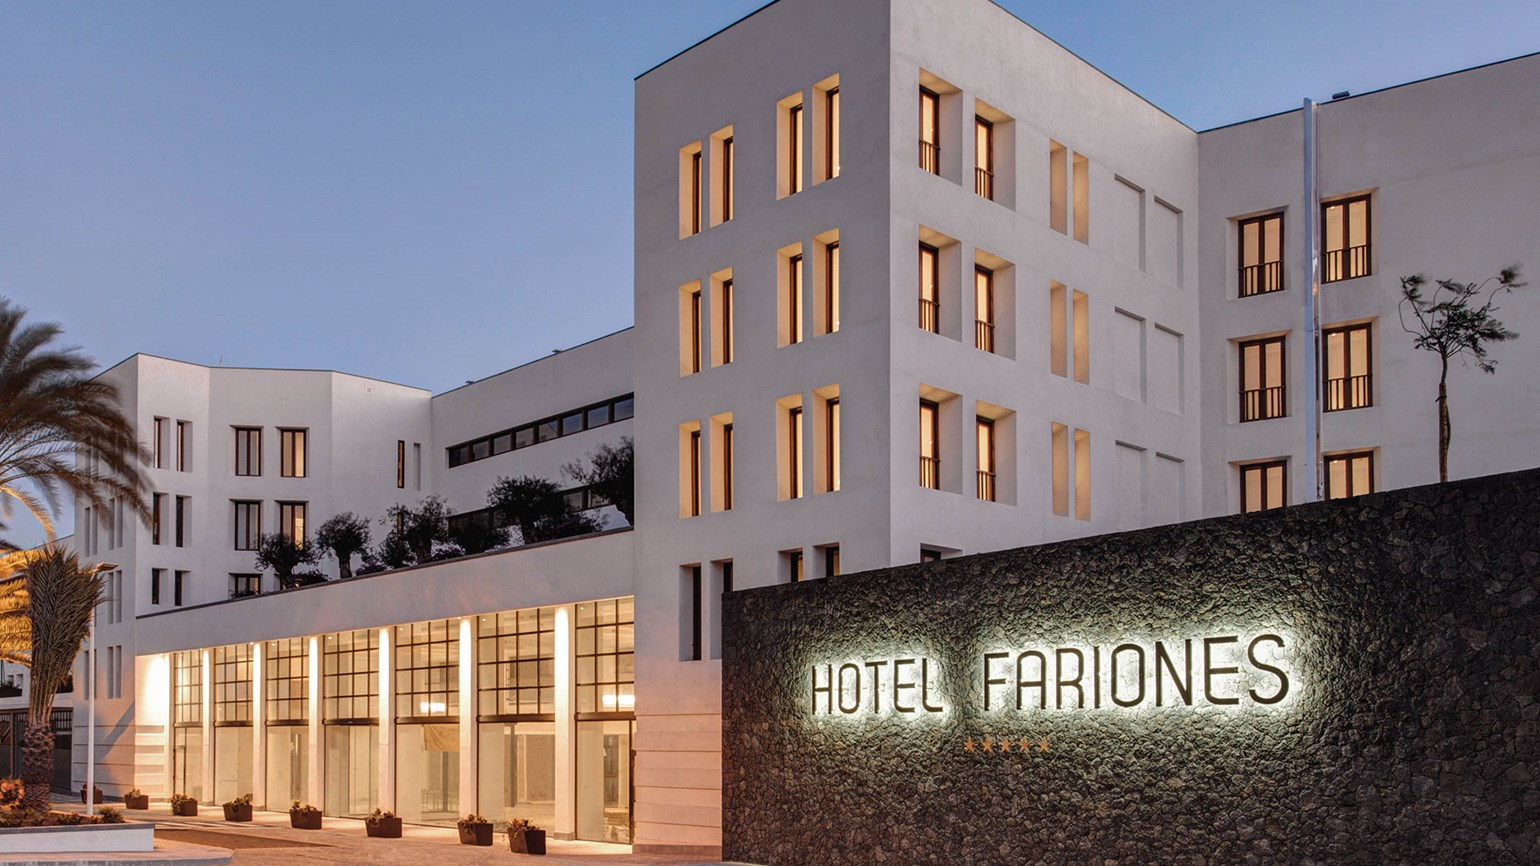 Hotel Fariones opens in the Canary Islands